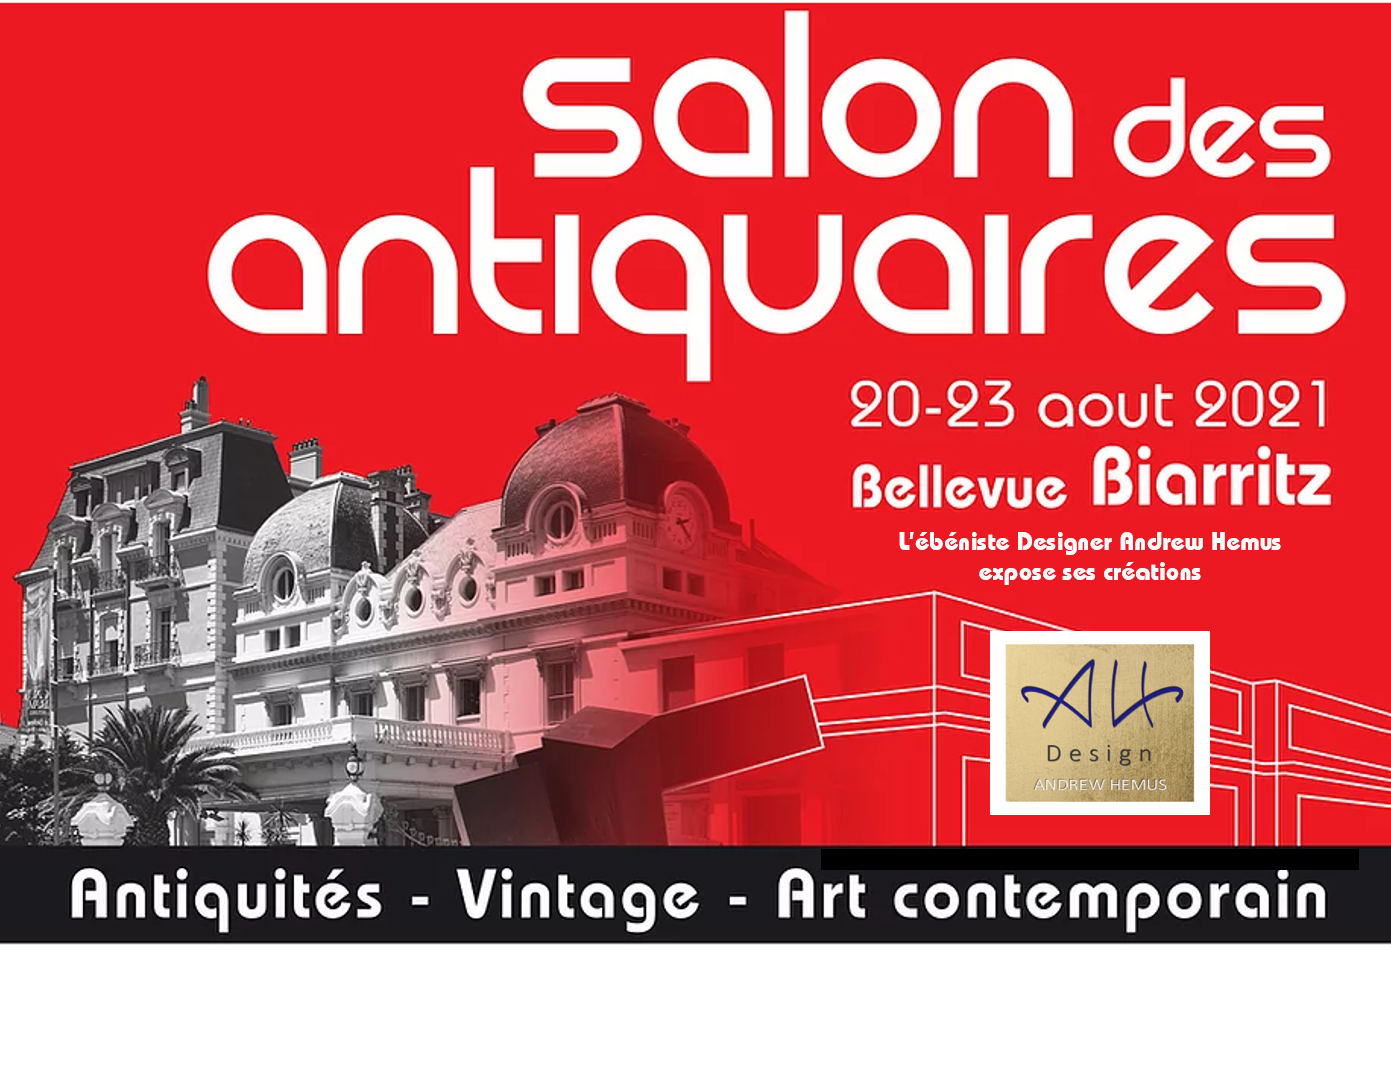 Antiques Fair in Biarritz from August 20 to 23, 2021